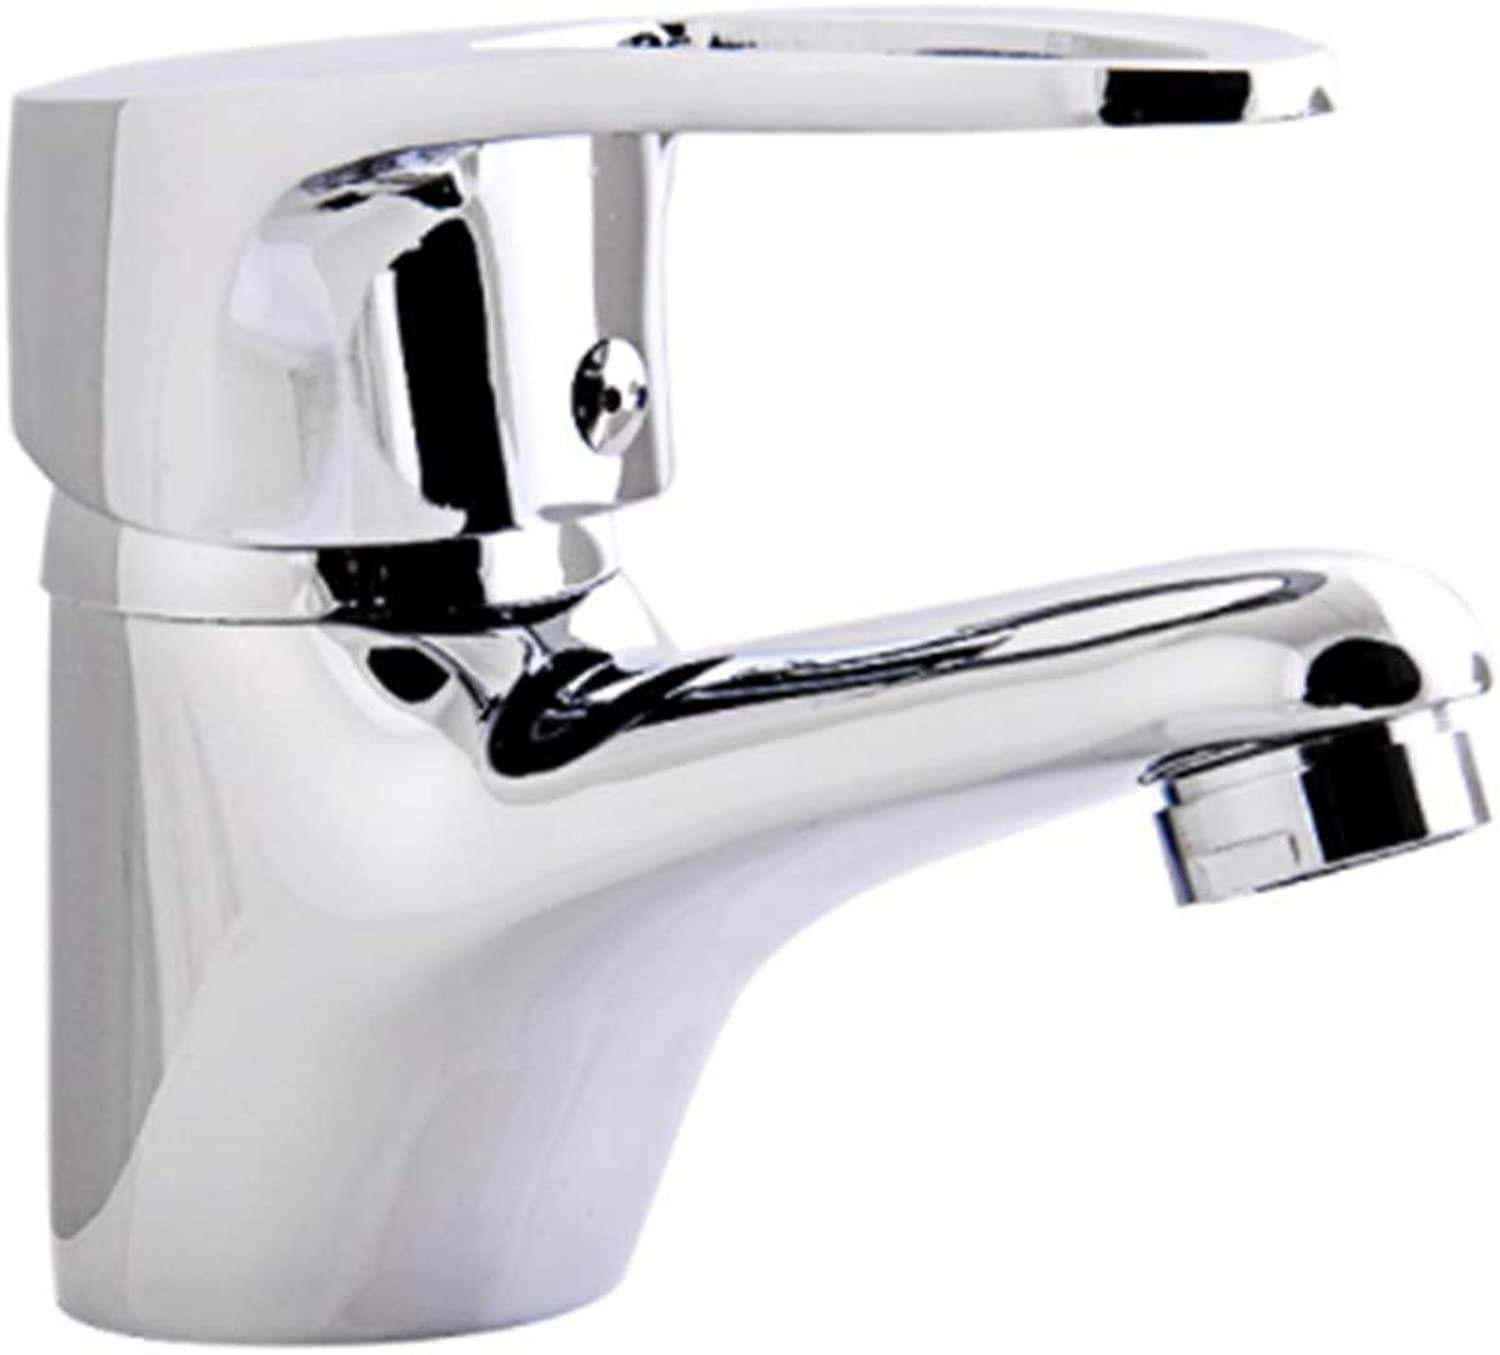 Taps Kitchen Basin Bathroom Washroombathroom Basin Faucet Mini Brass Vessel Sink Water Tap Chrome Finish Mixer Deck Mount Cold and Hot Water Taps